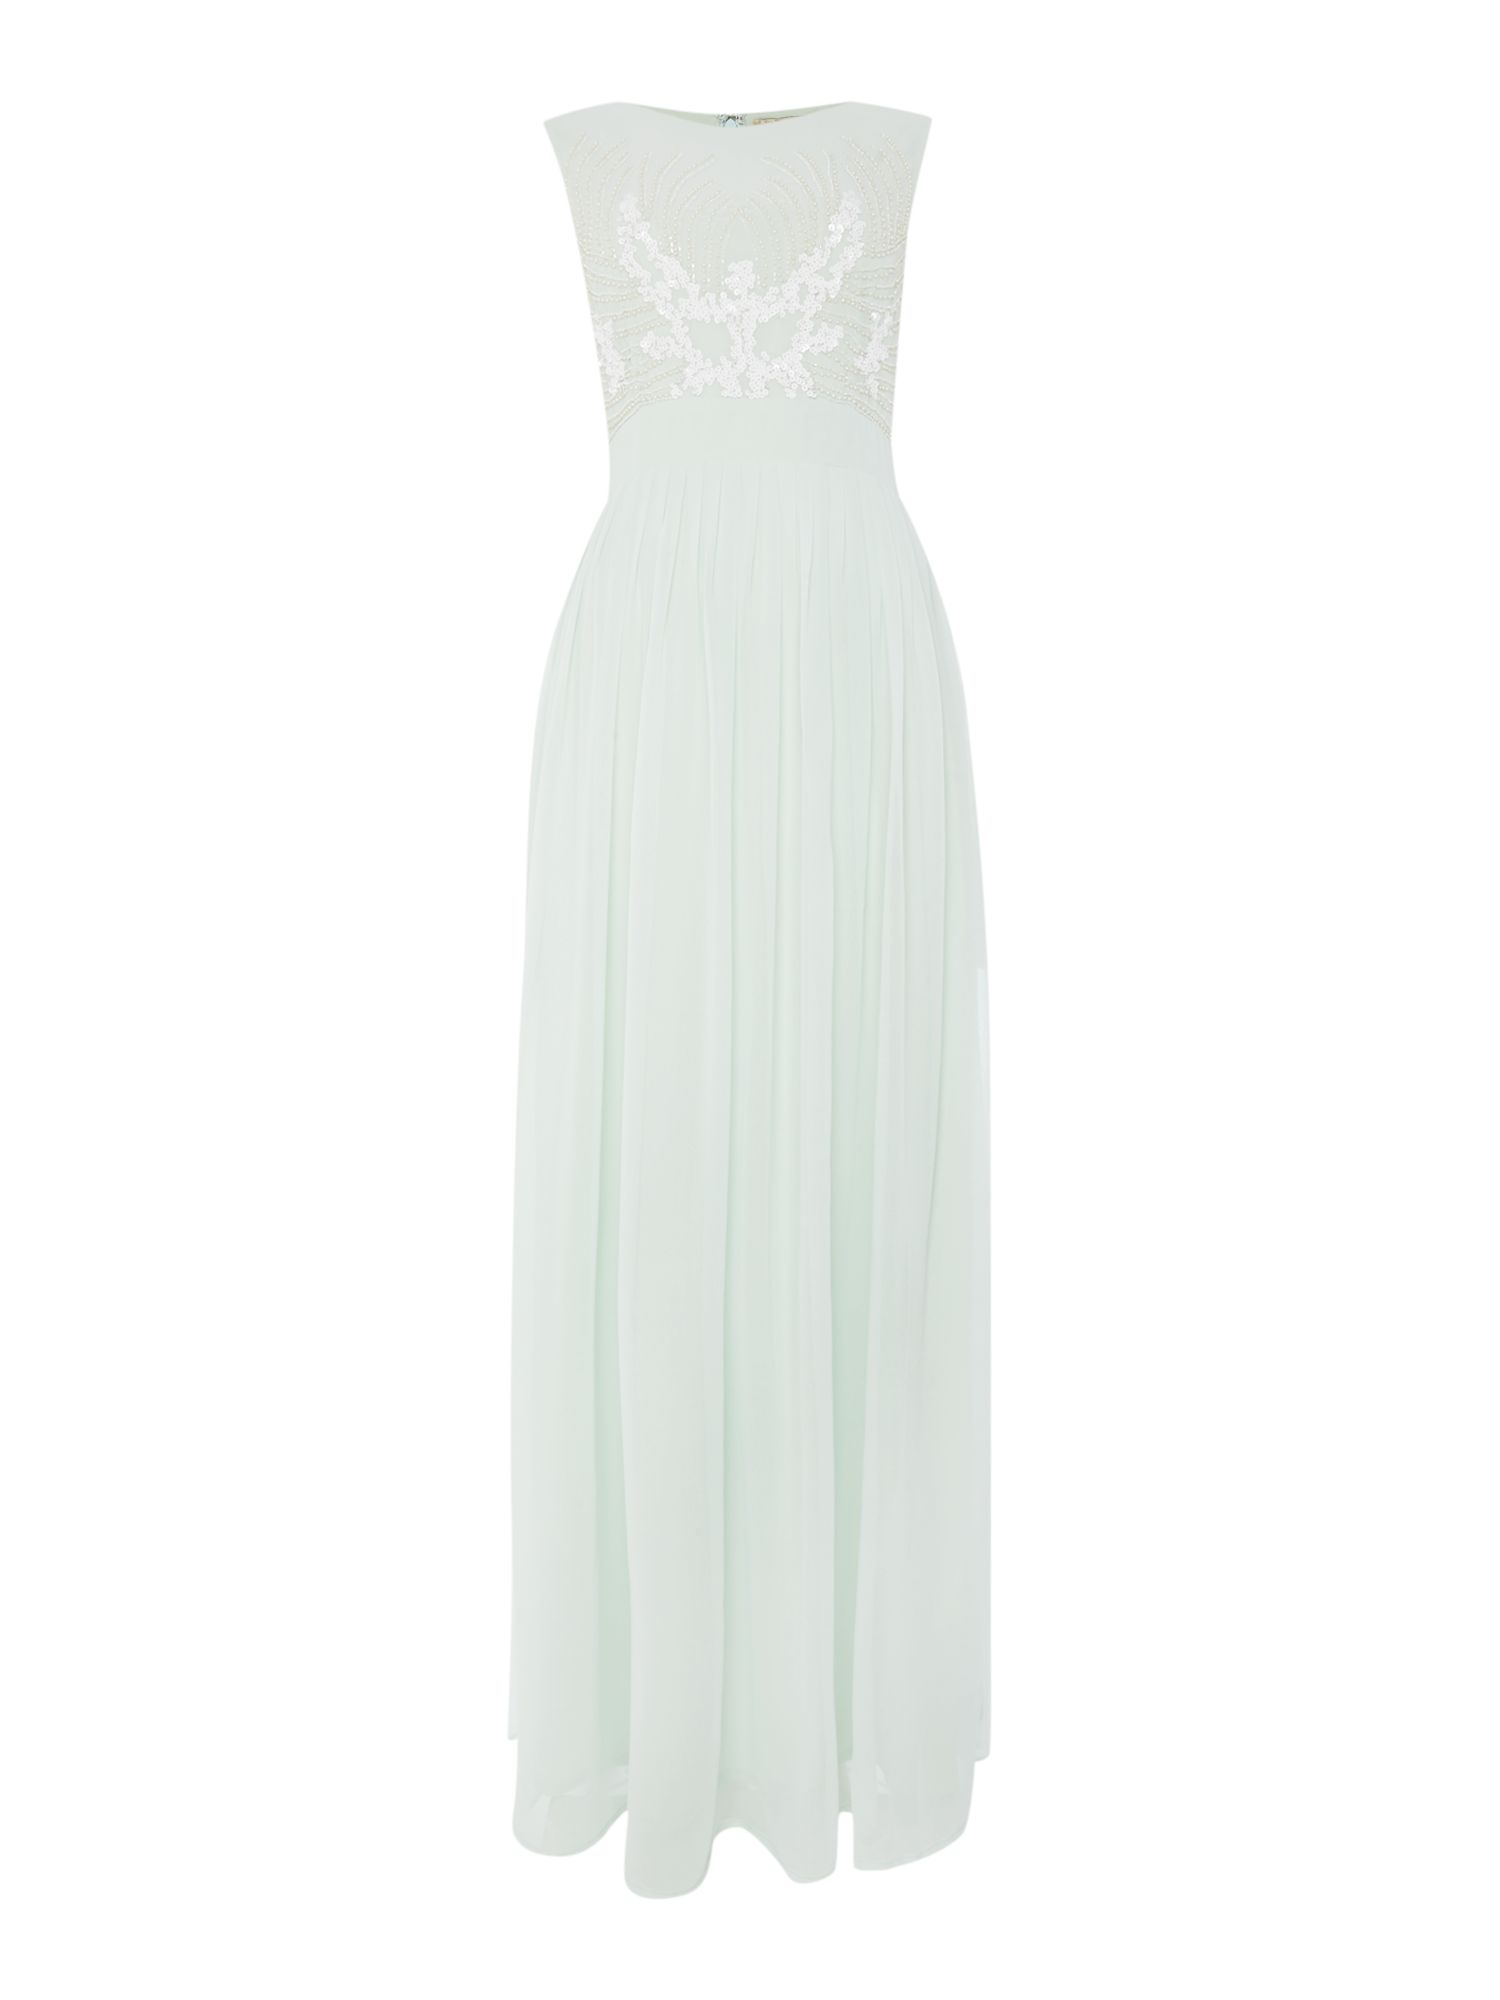 Lace and Beads Sleeveless Beaded Top Maxi Dress